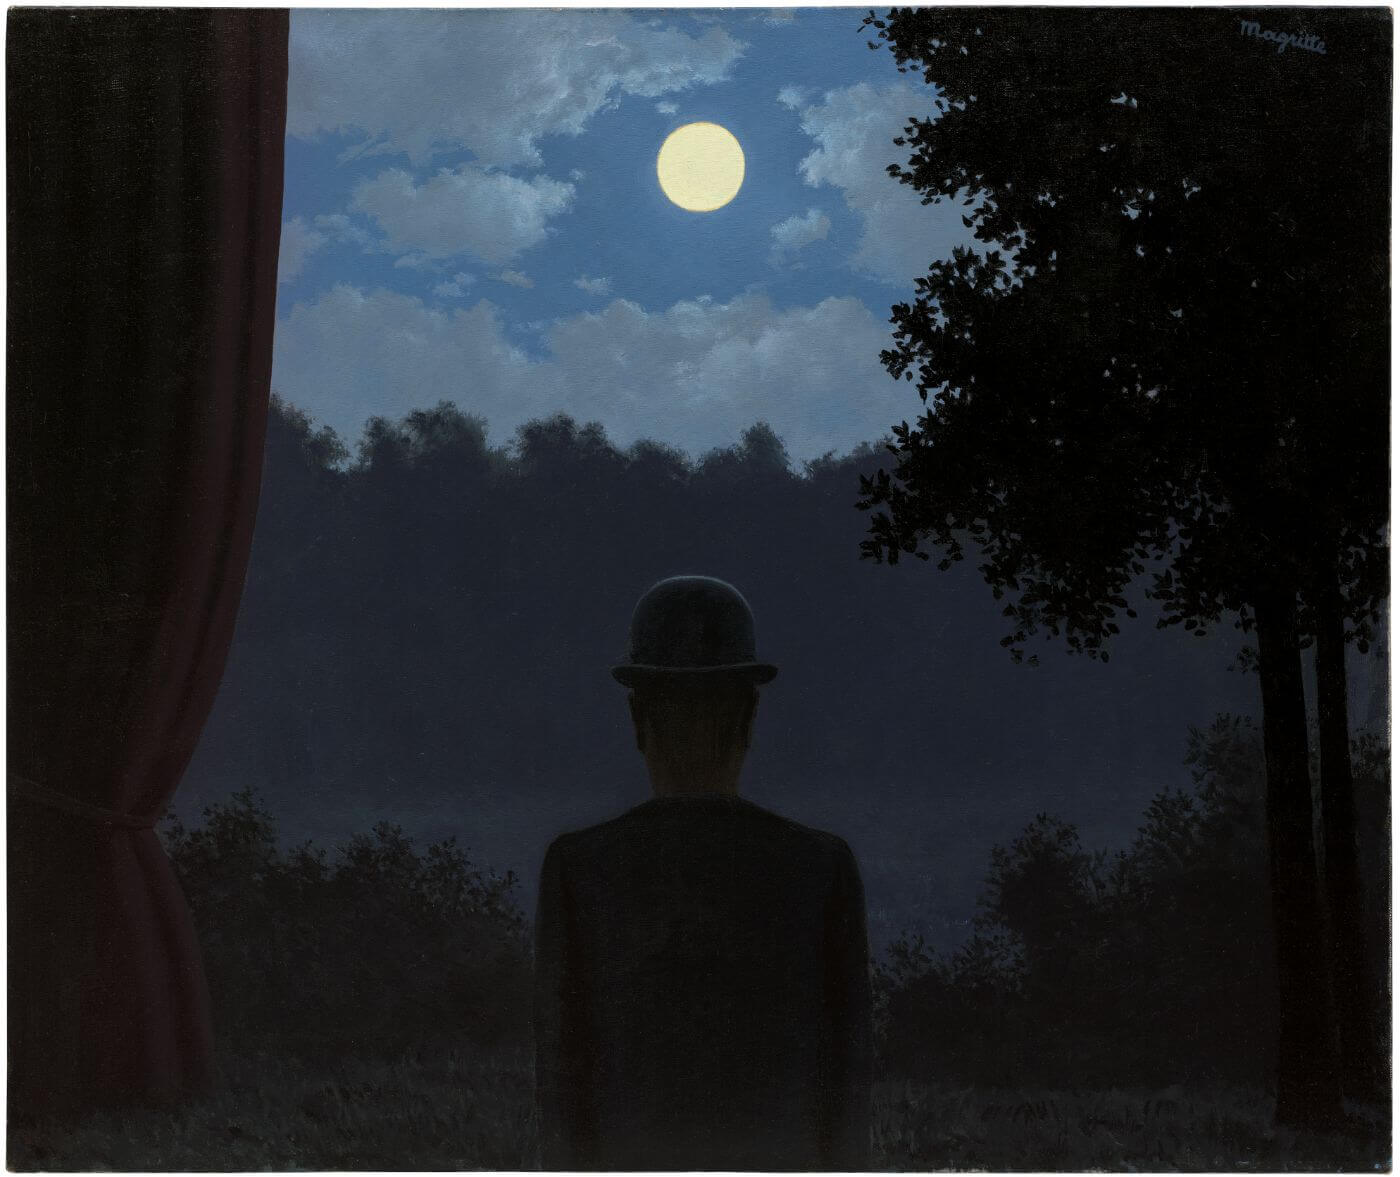 Rene Magritte Paintings | Buy Posters, Frames, Canvas, Digital Art & Large Size Prints Of The Famous Modern Master's Artworks